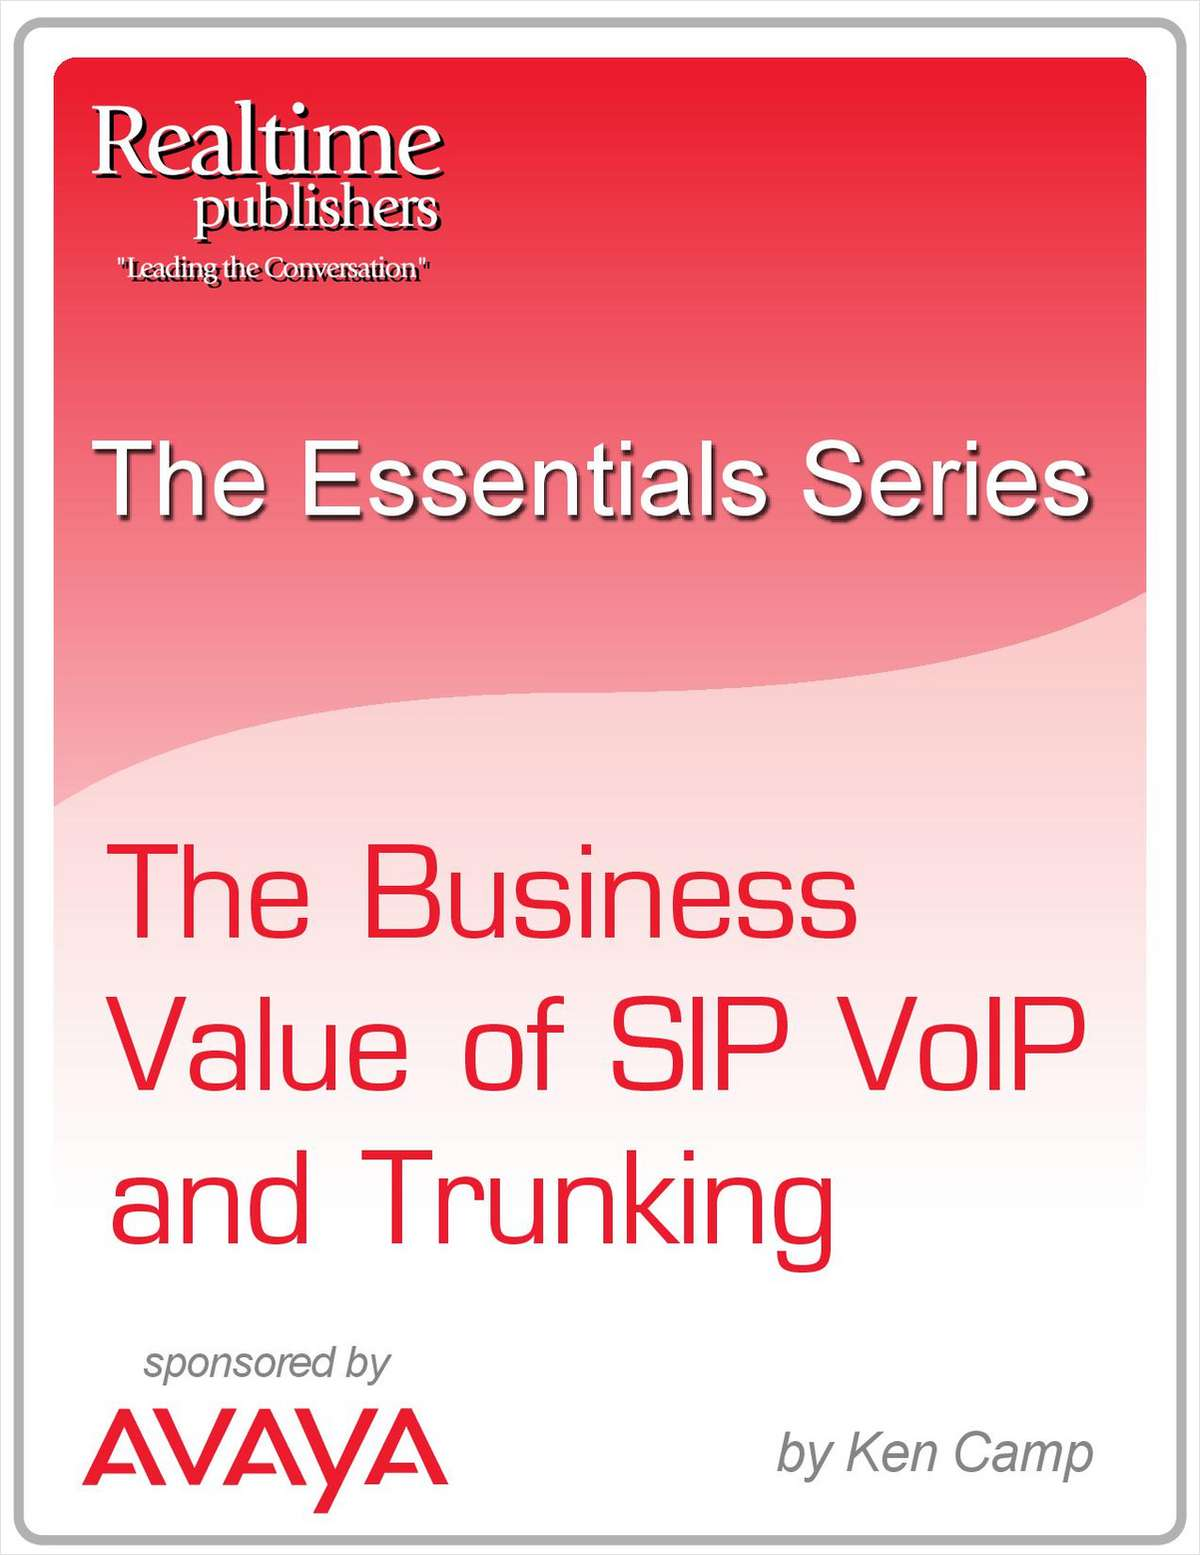 The Business Value of SIP VoIP and Trunking